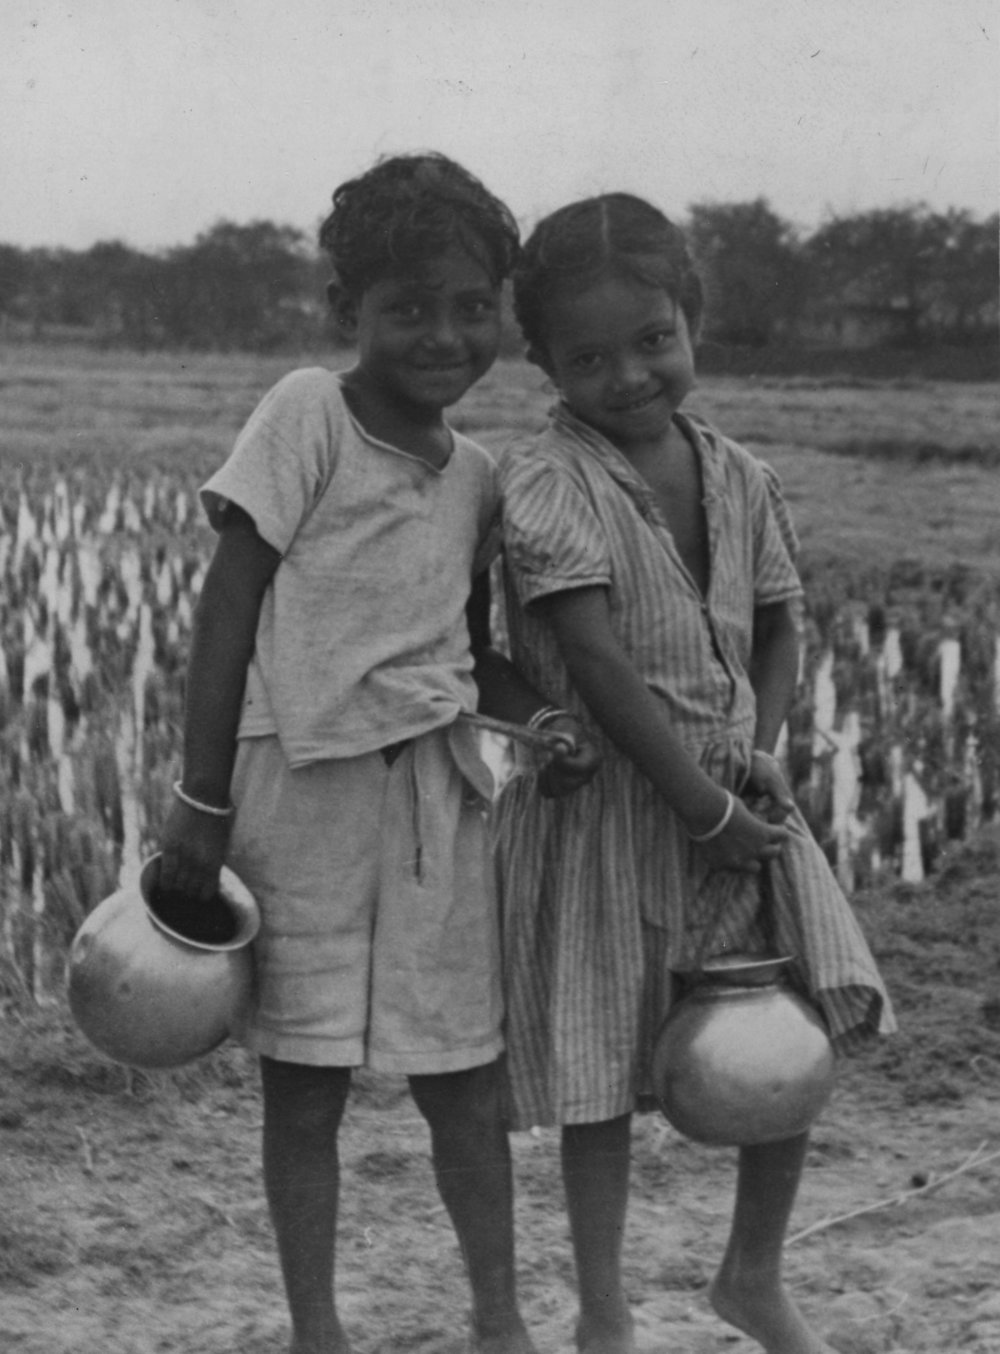 AFSC program in Bengal, 1947